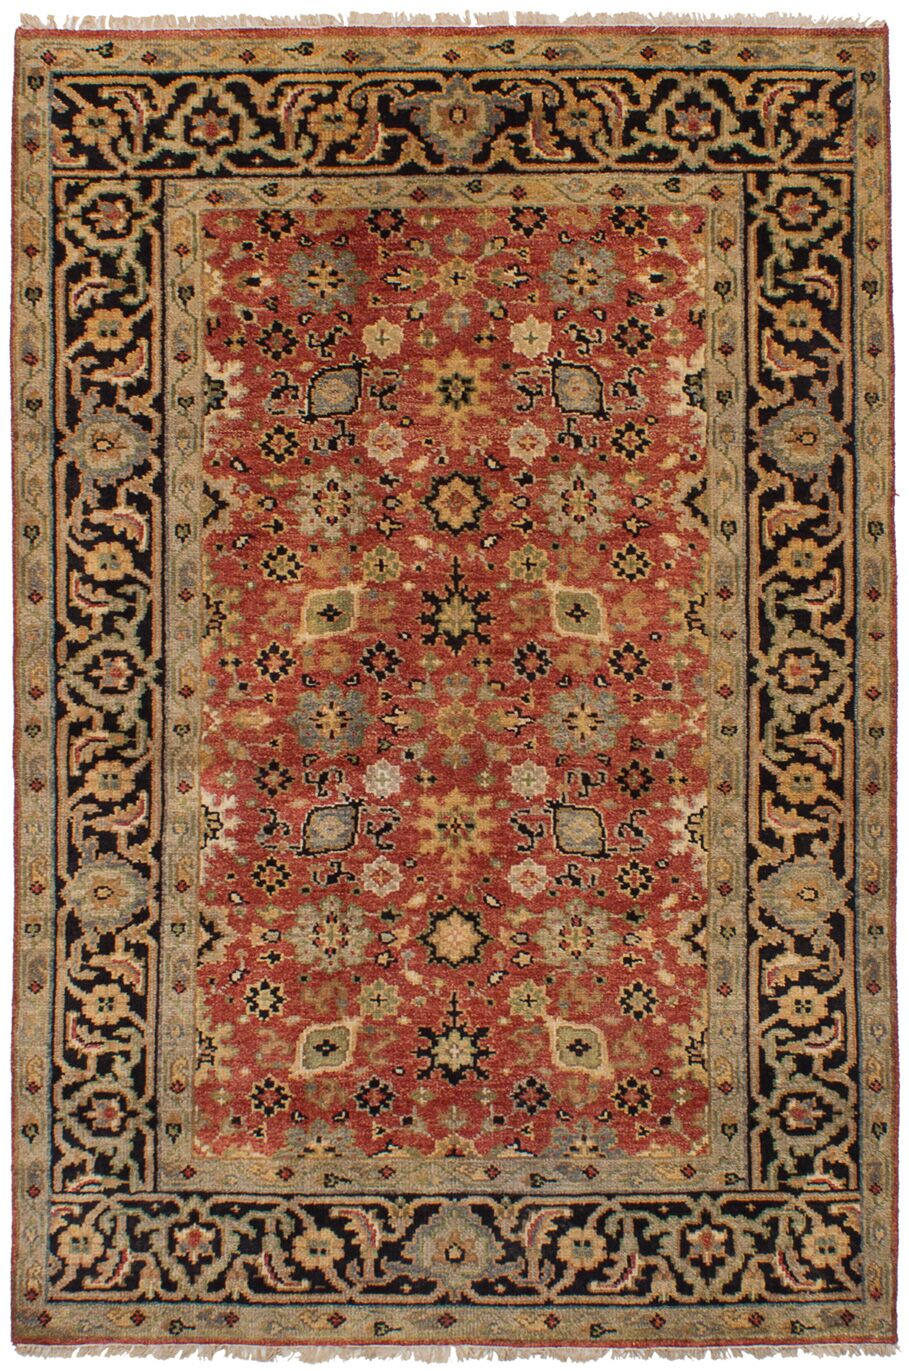 Lenita Hand-Knotted Wool Red Oriental Area Rug